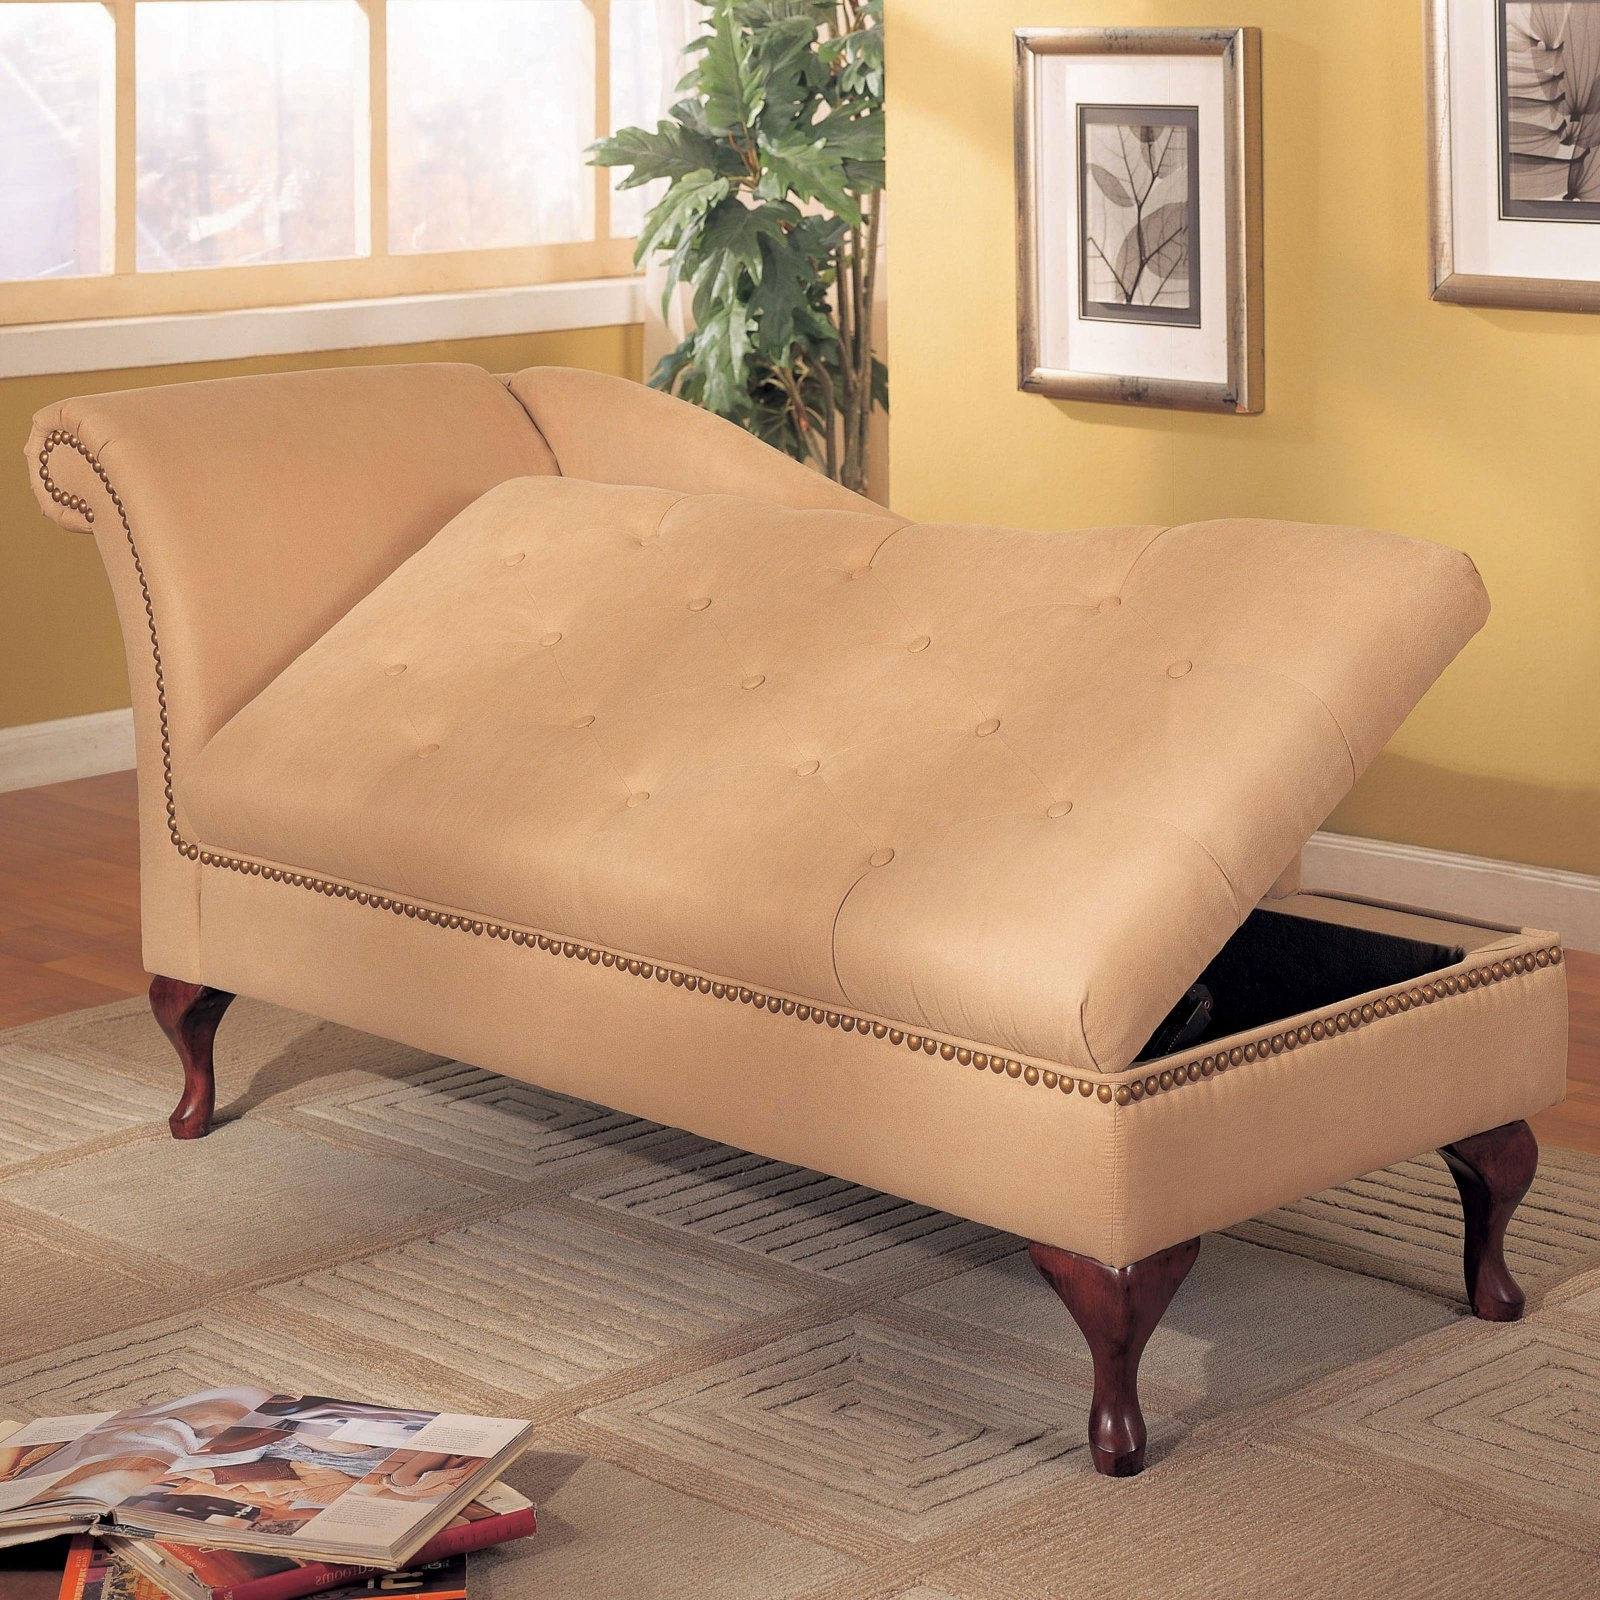 Storage Chaise Lounges Intended For Most Recently Released Indoor Chaise › Indoor Chaise Lounge With Storage Chaise Lounges (View 9 of 15)